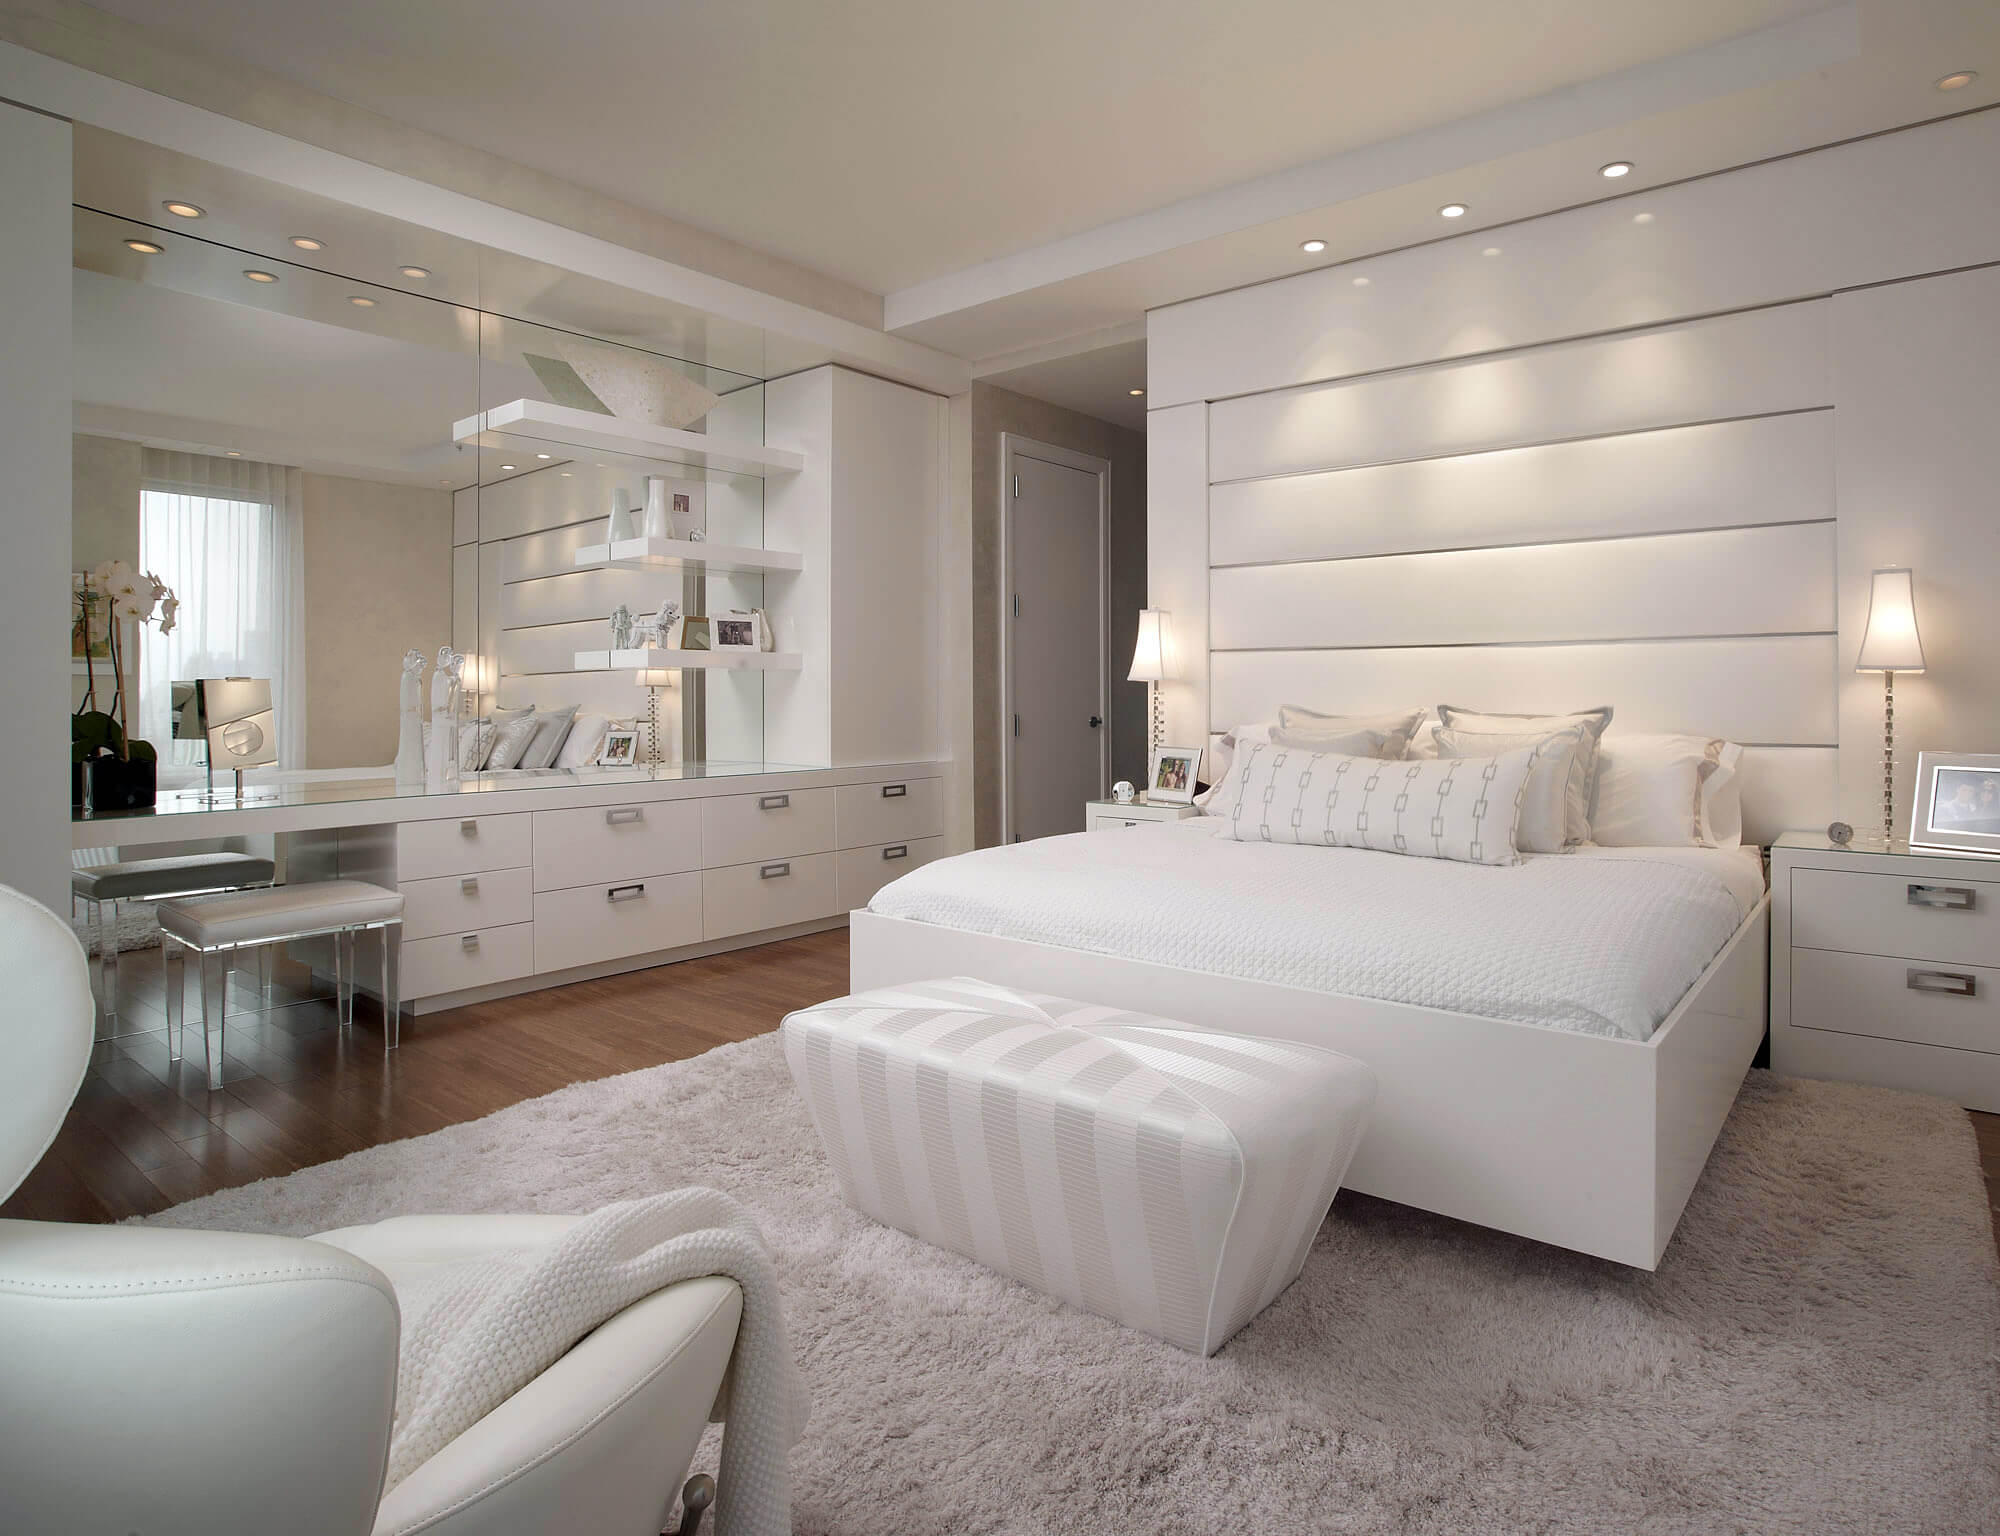 Warm Bedrooms Colors  Ideas About Bedroom Colors On Pinterest - Best bedroom color